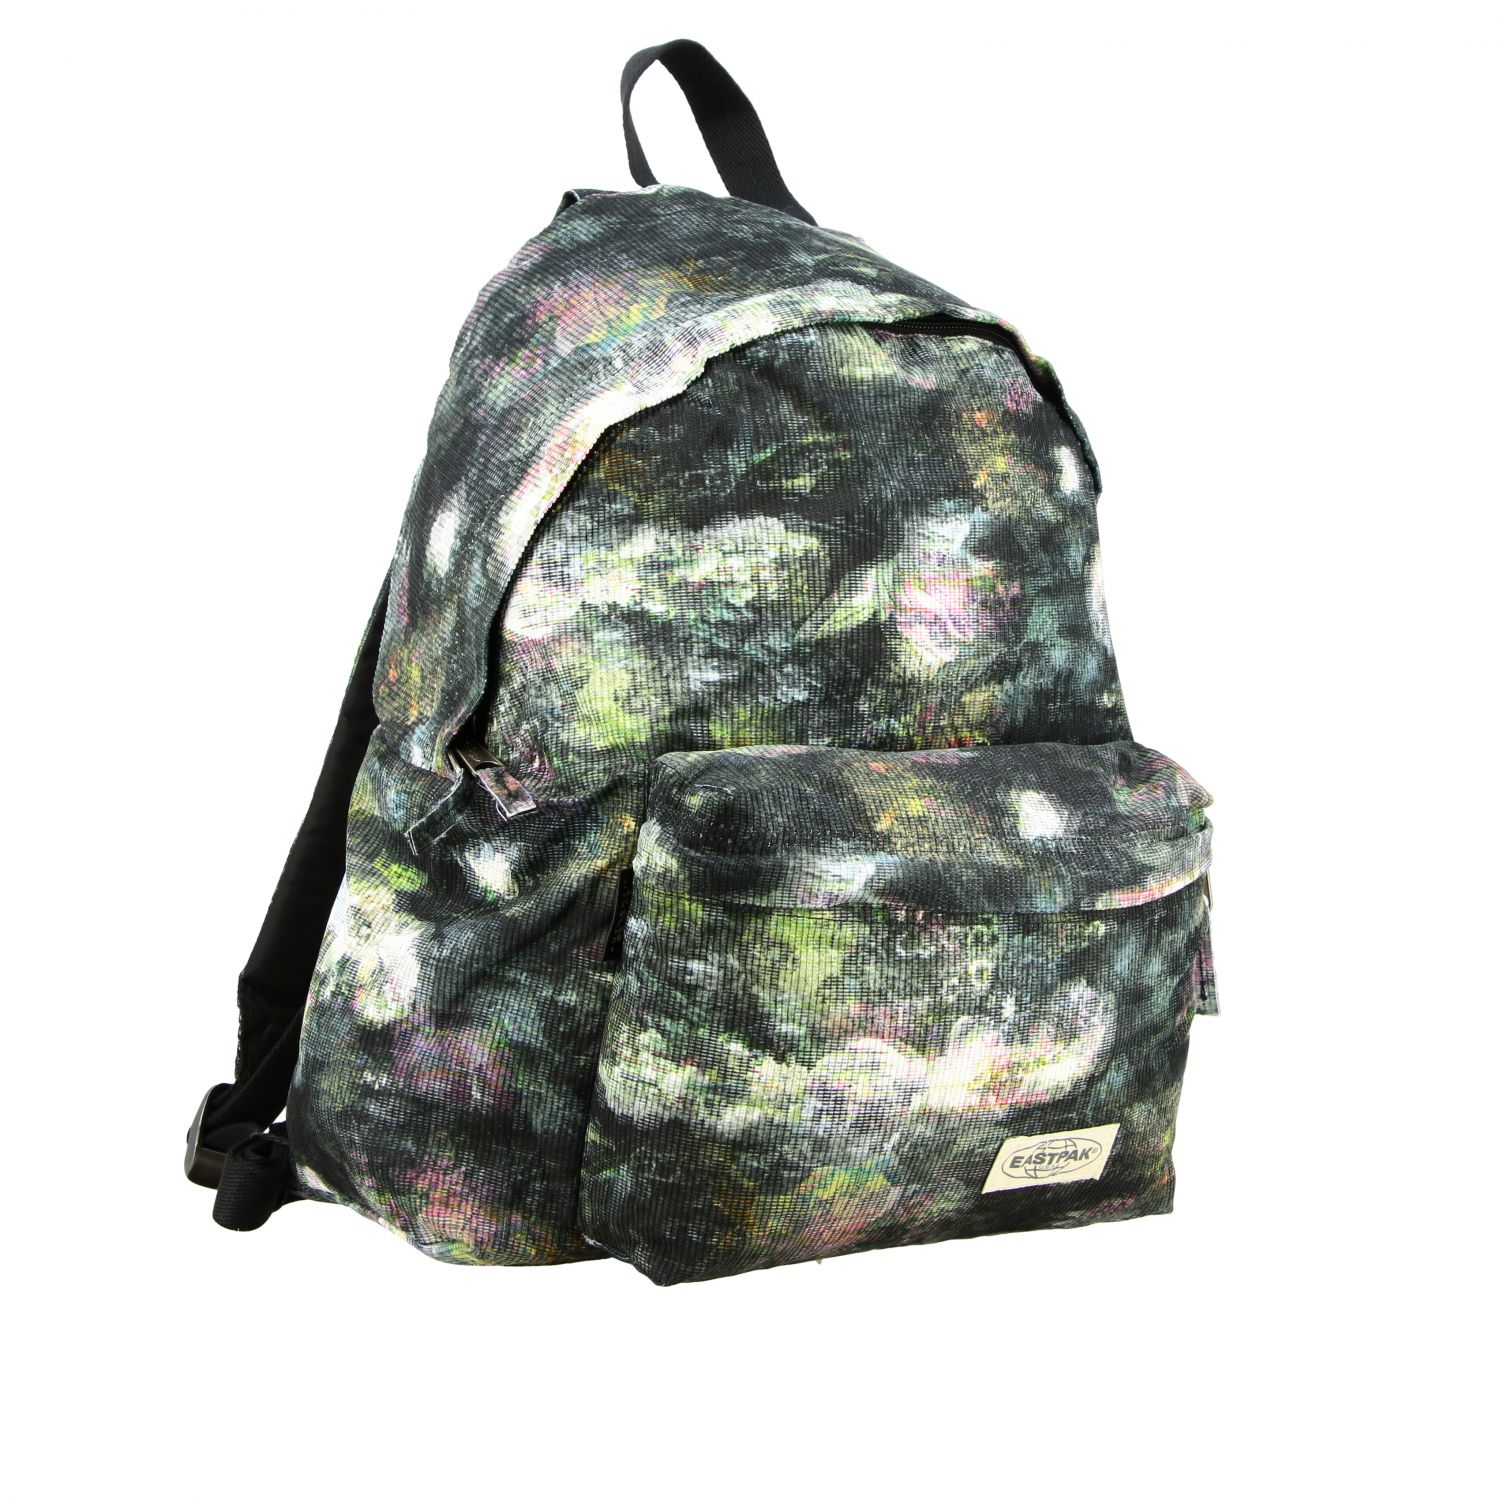 Shoulder bag women Eastpak multicolor 2